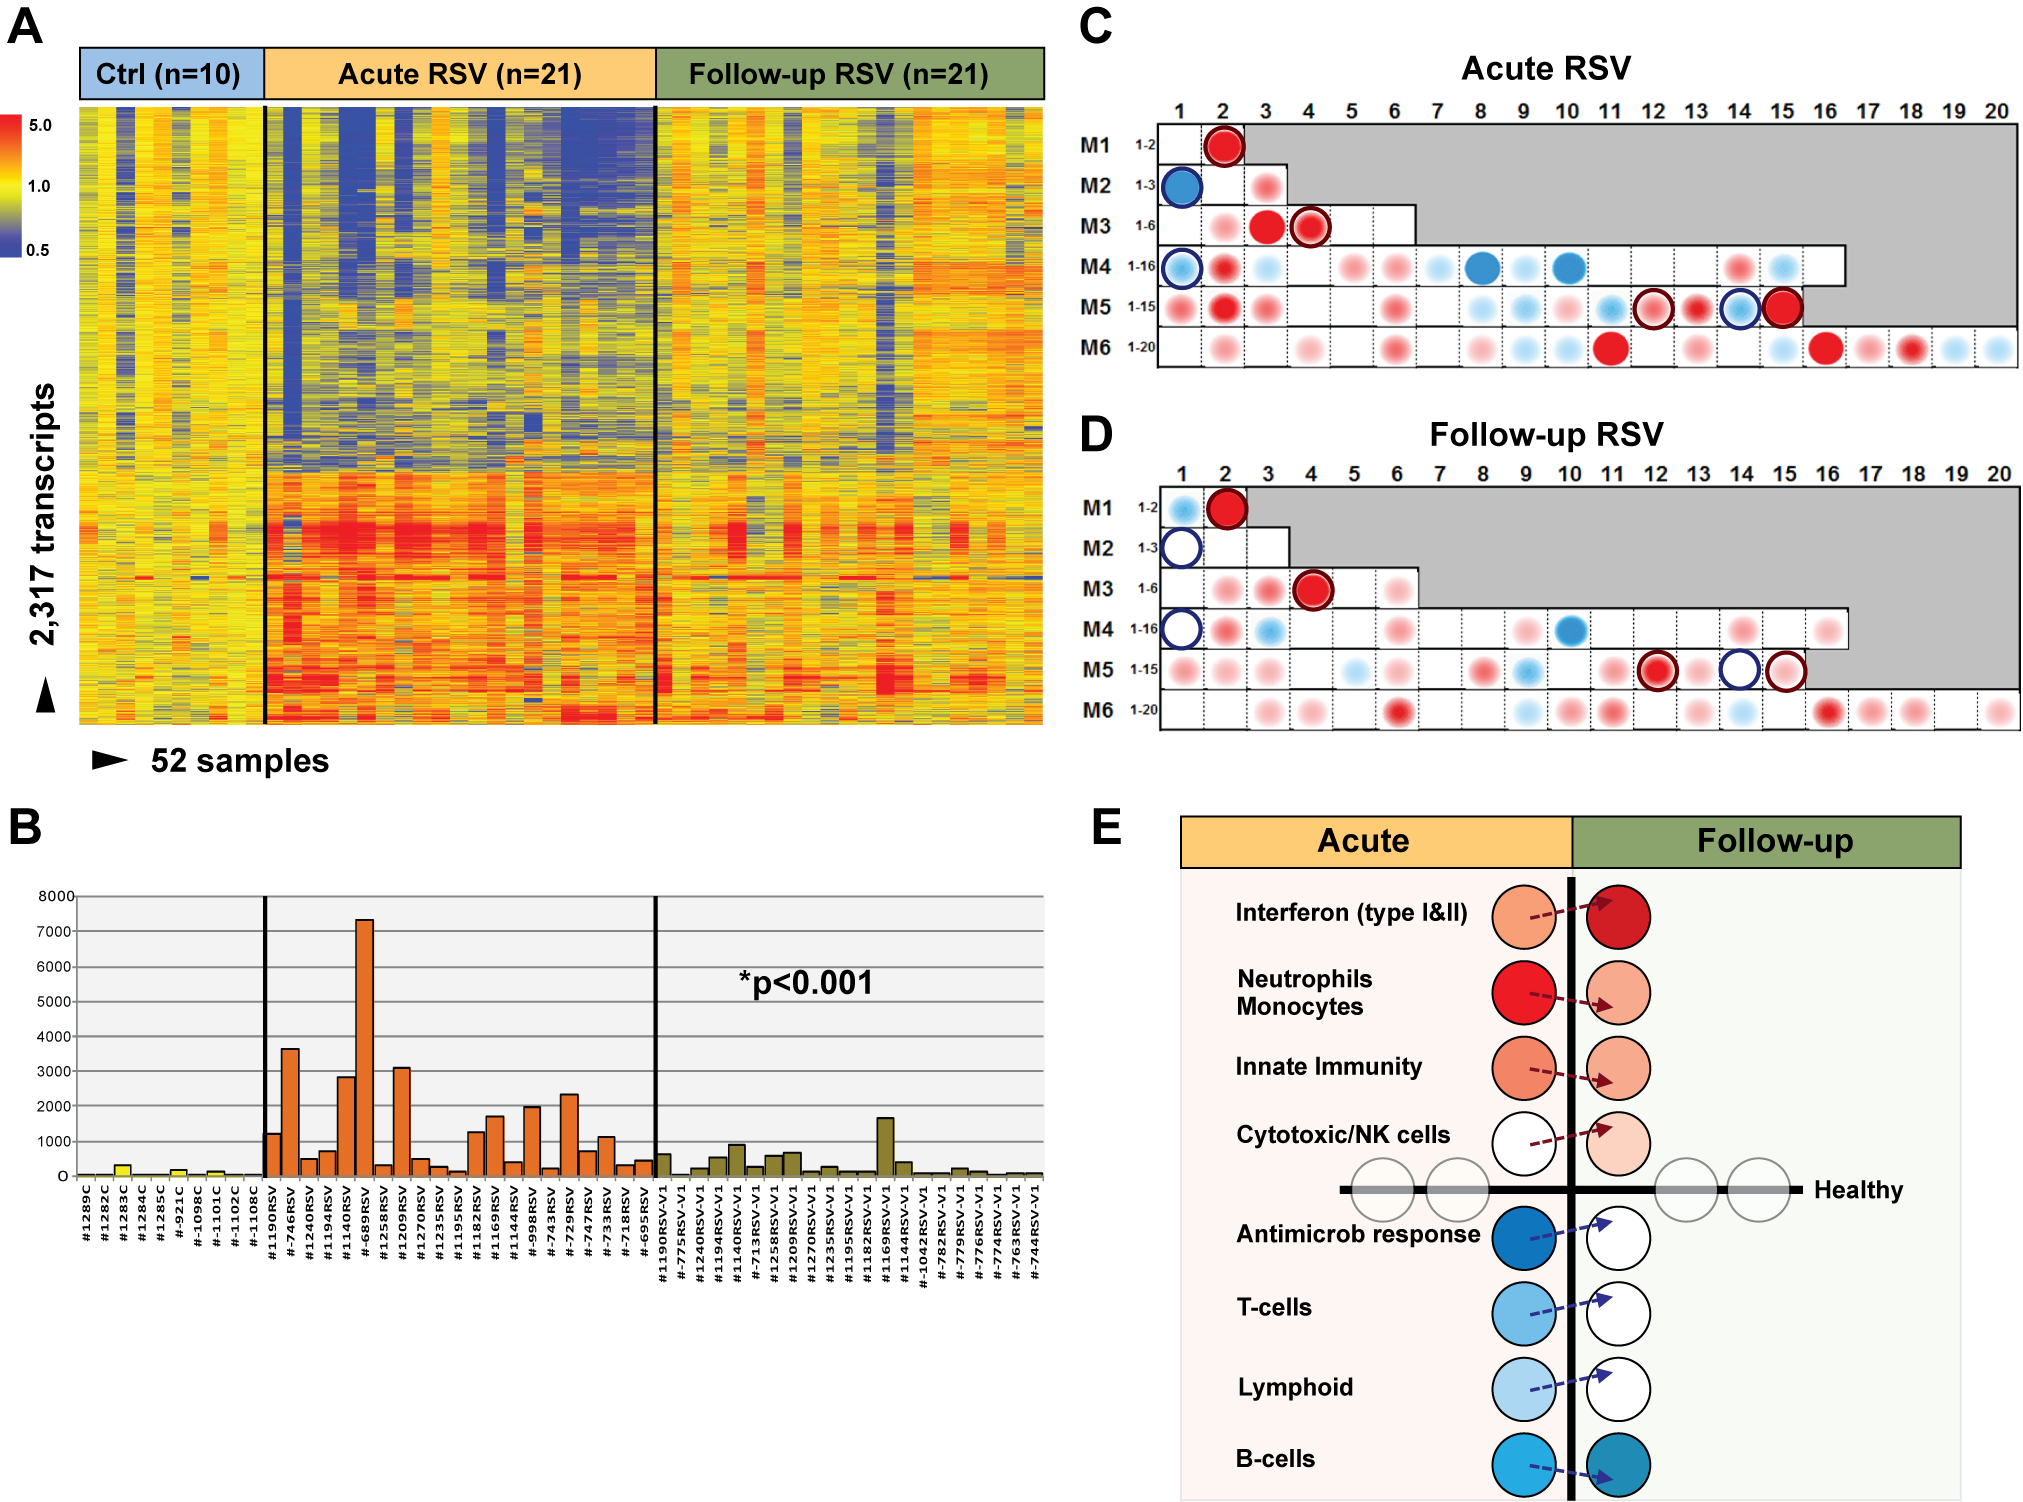 Blood host immune profiles remain altered 1 mo after acute RSV LRTI.